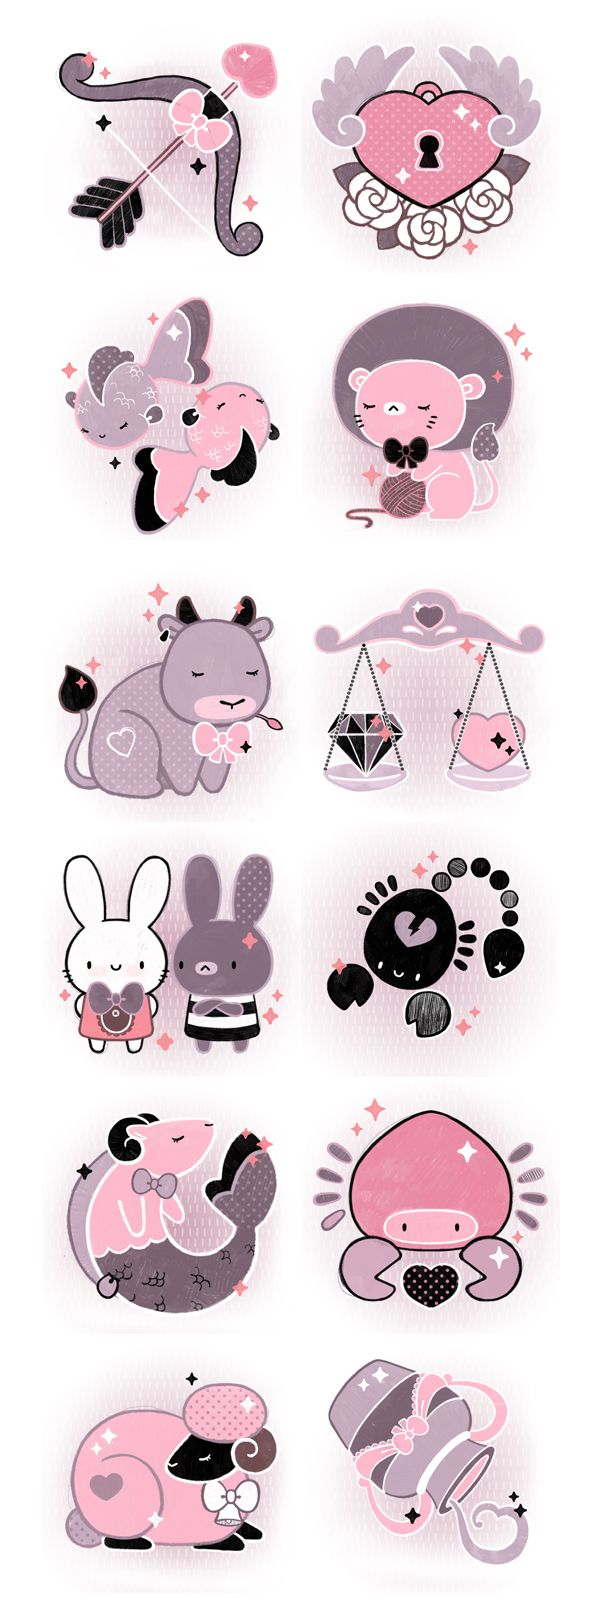 horoscope icons yes!teen 2011 by Hi Funghi , via Behance